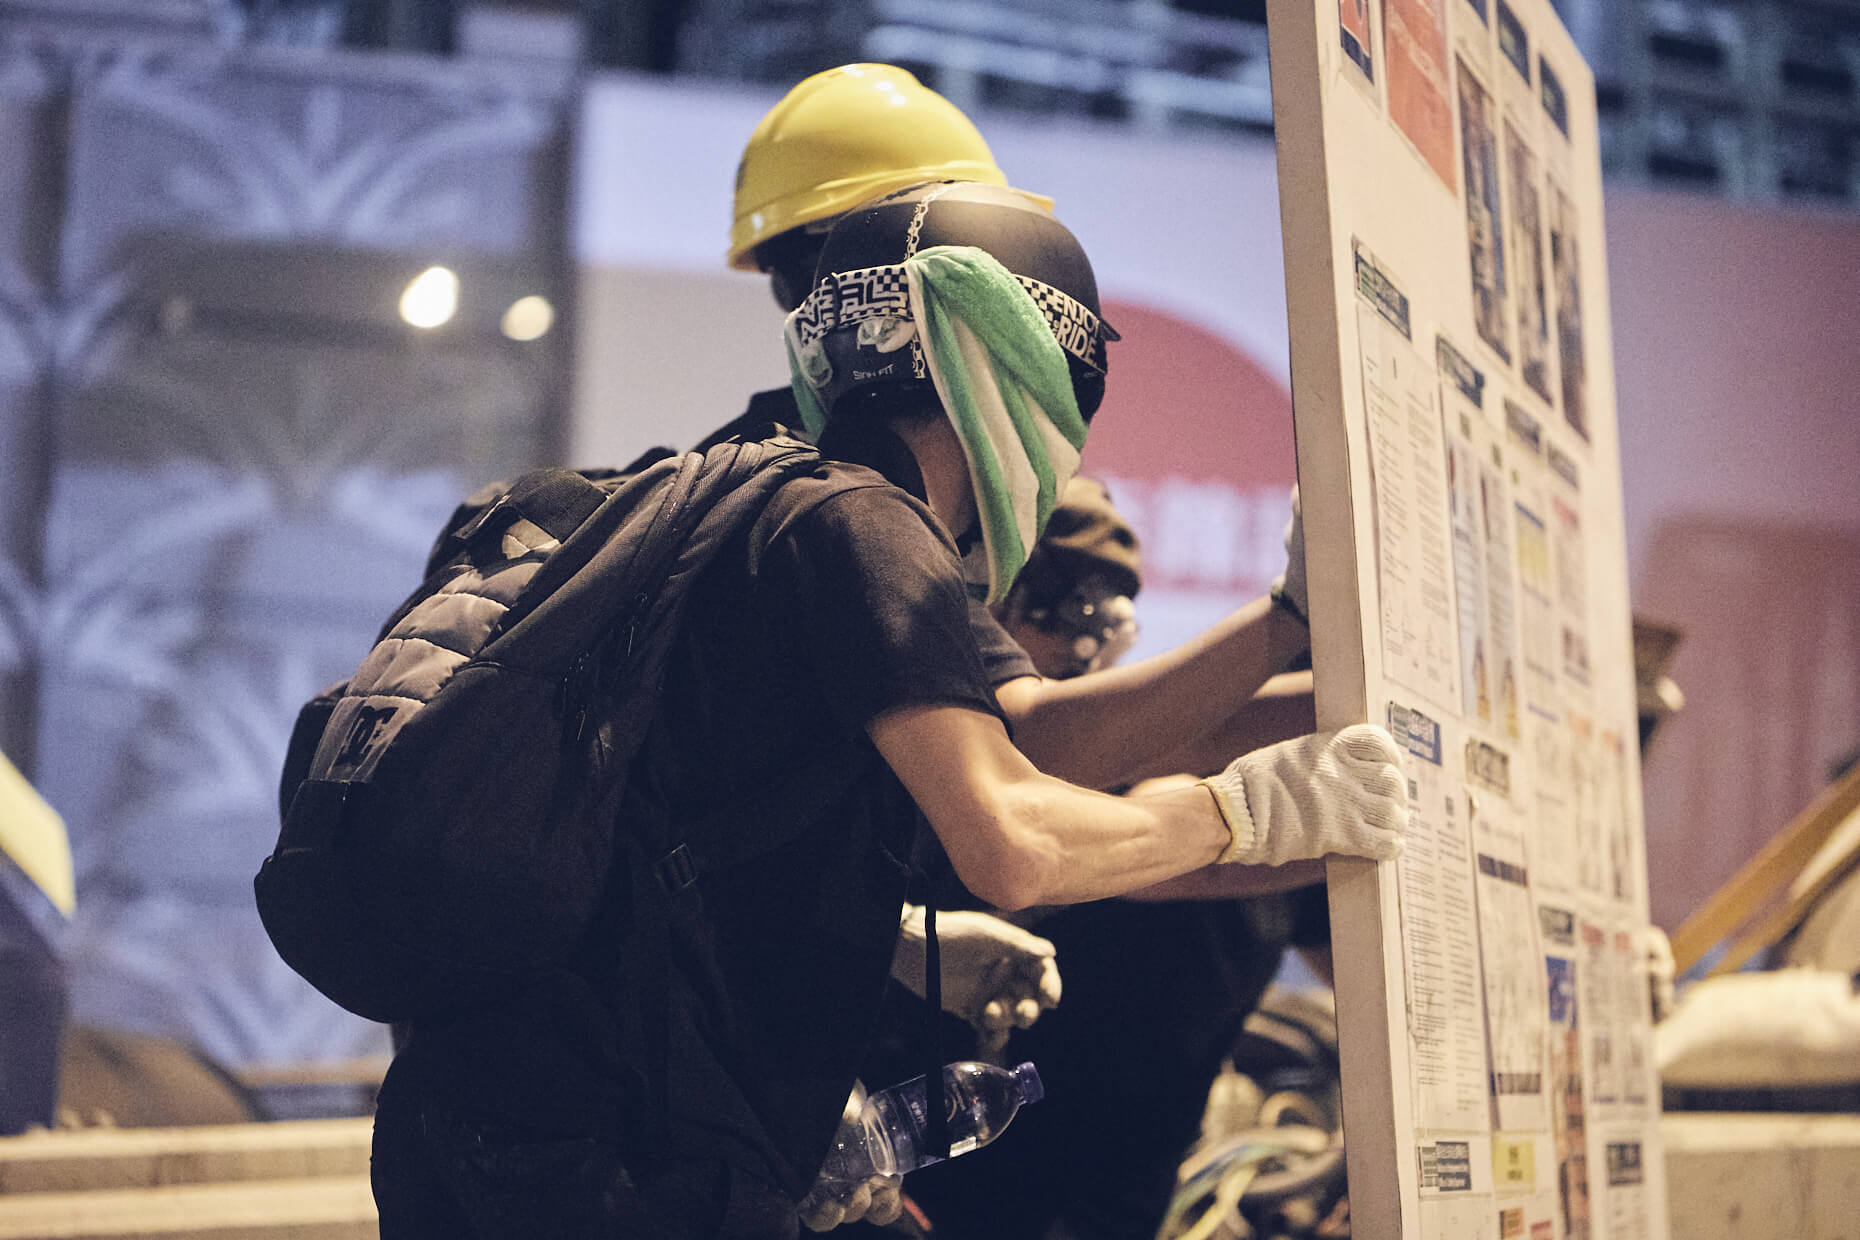 Hong_Kong_Protests_70